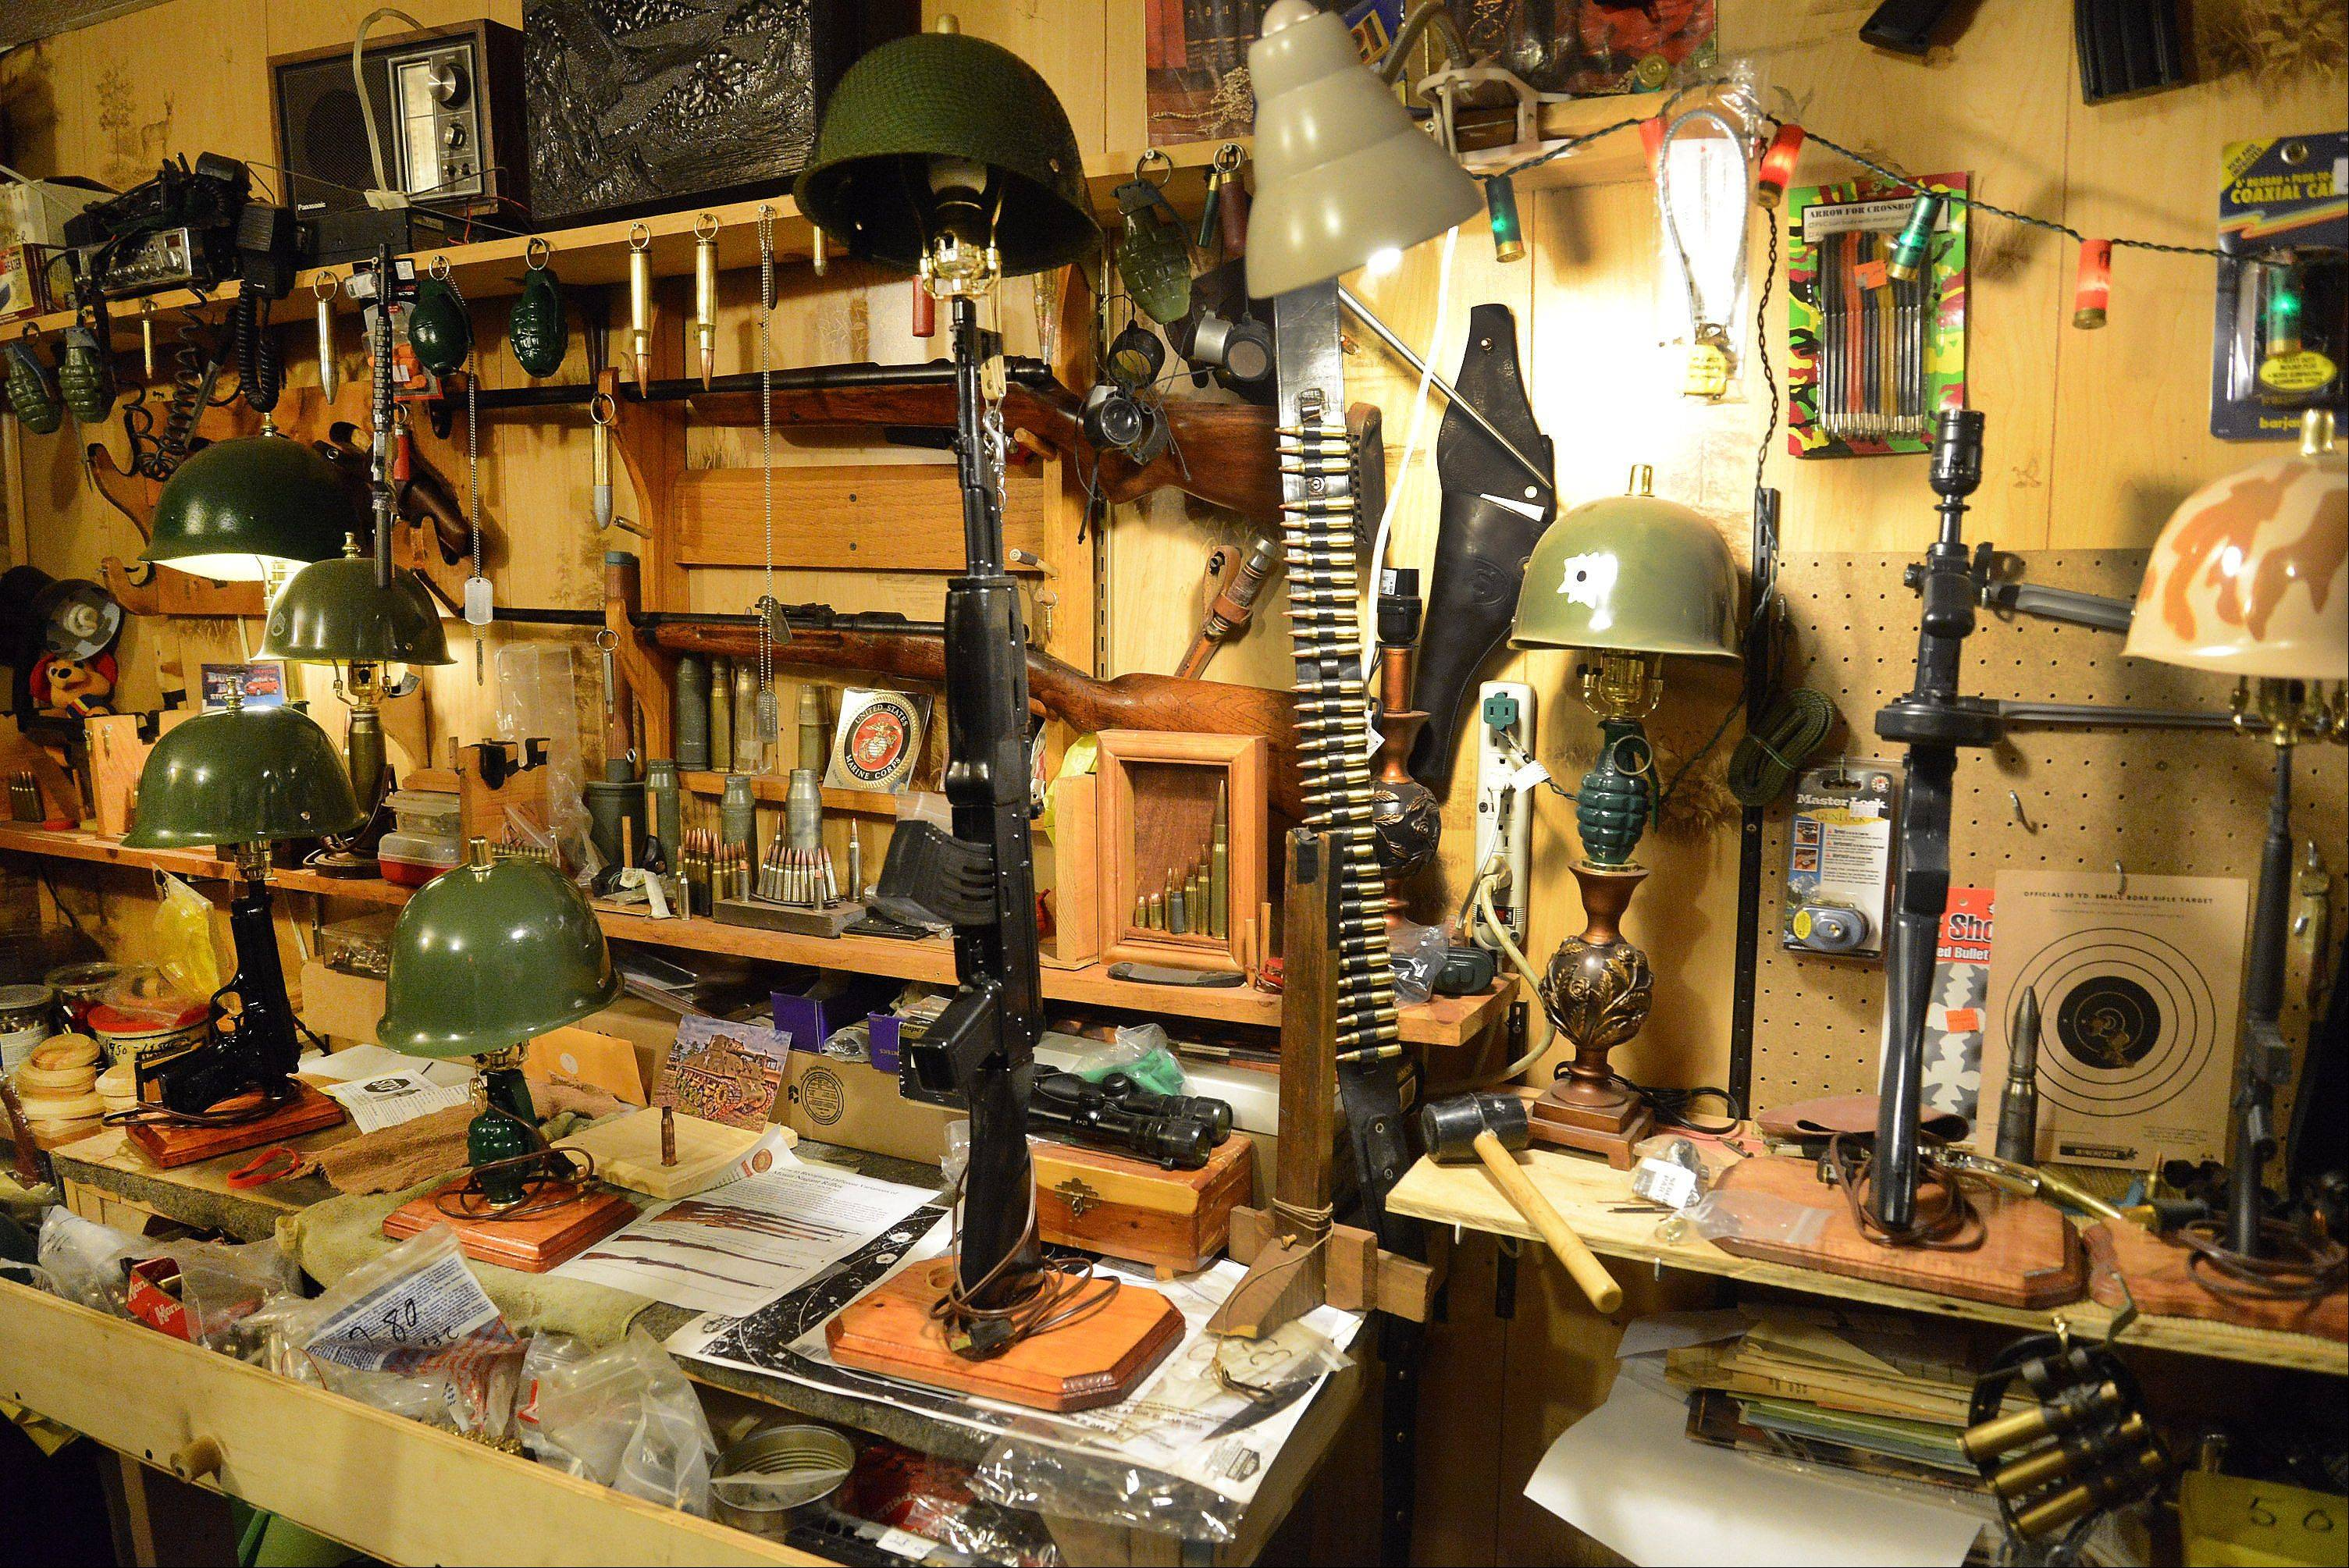 Some of Tony's work on display in his Mundelein basement workshop.